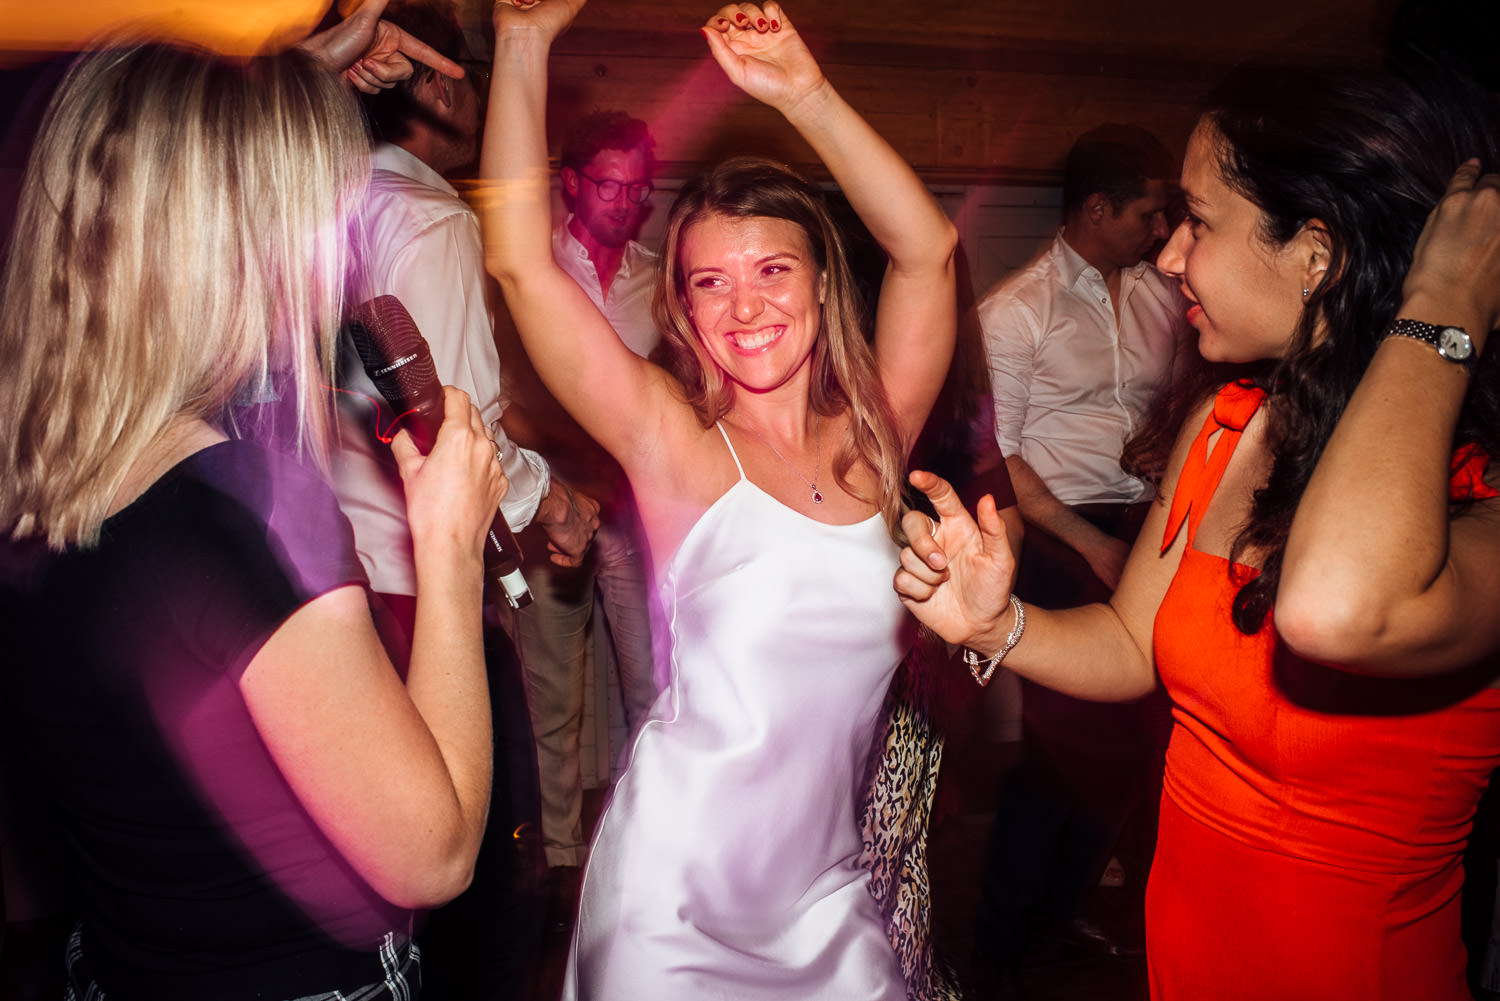 bride dancing in oxleaze barn wedding